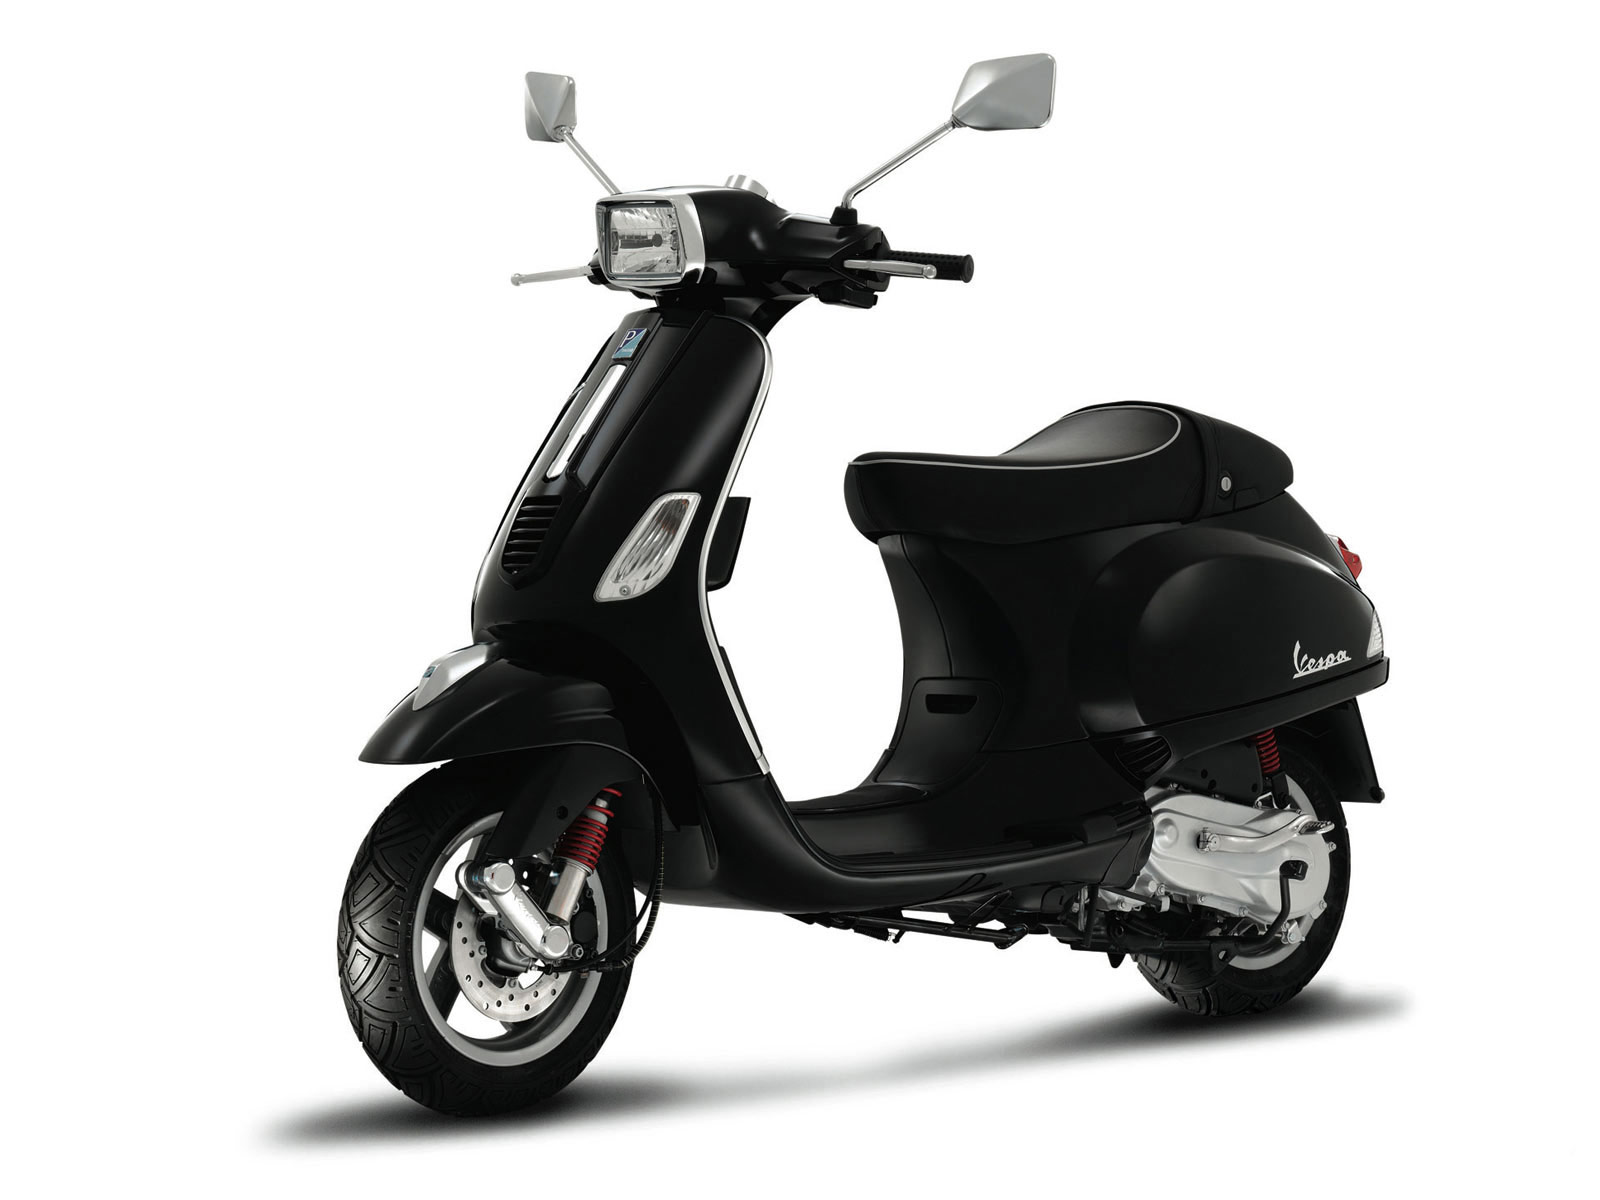 2008 vespa s50 scooter pictures accident lawyers info. Black Bedroom Furniture Sets. Home Design Ideas